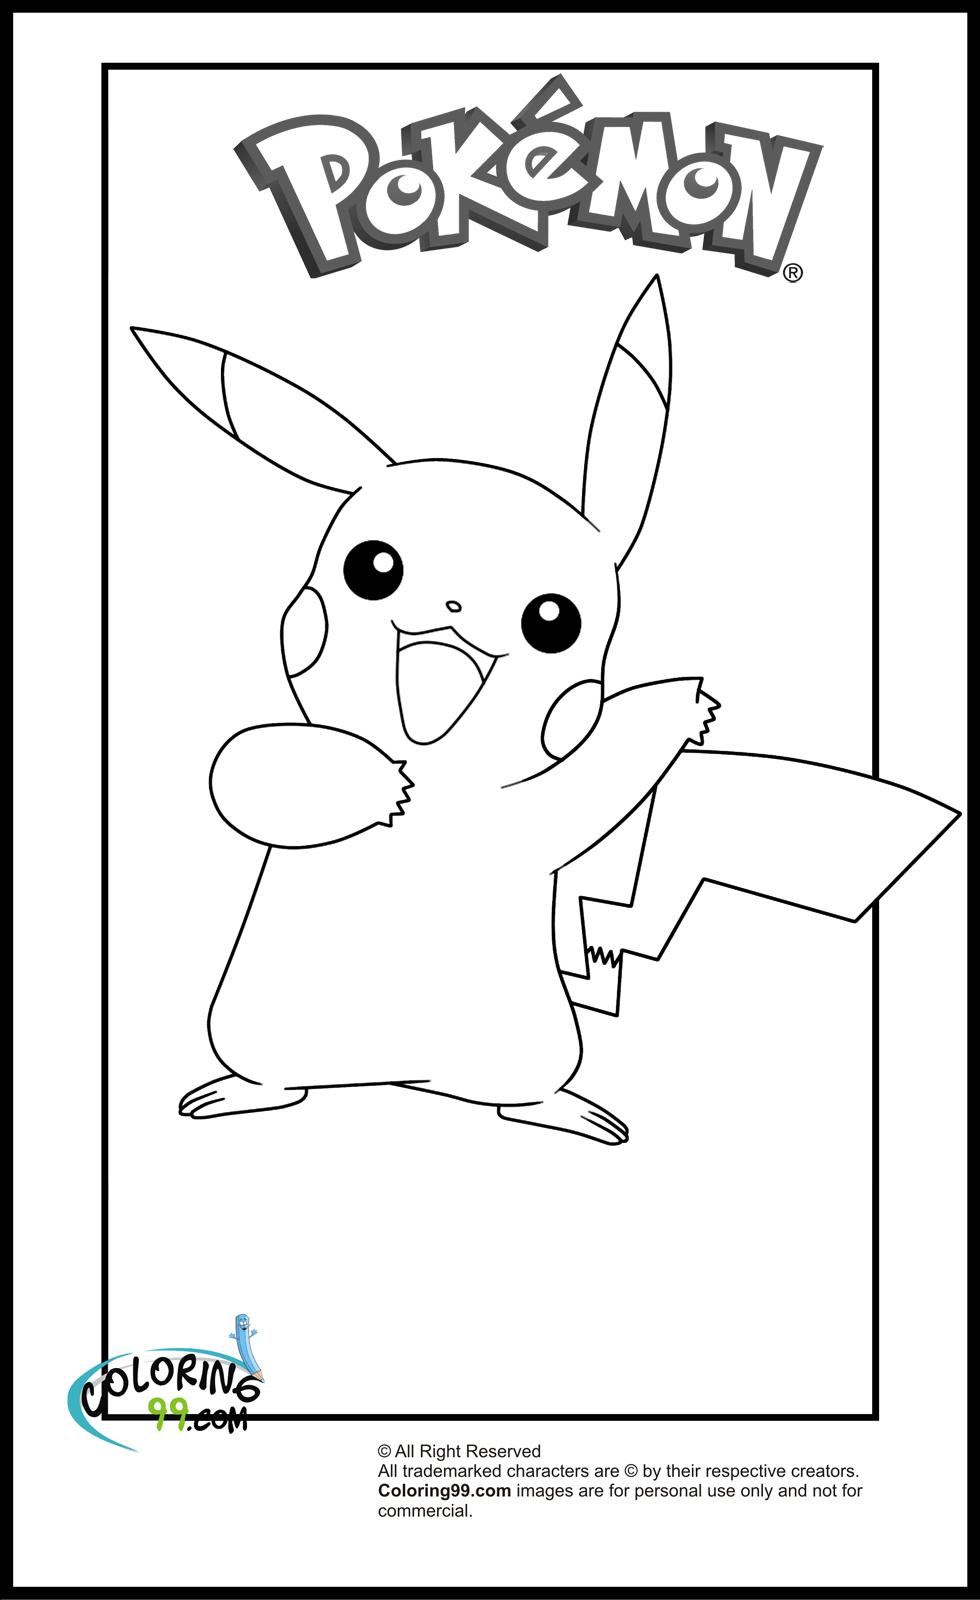 Pikachu coloring pages minister coloring for Pikachu coloring pages printable